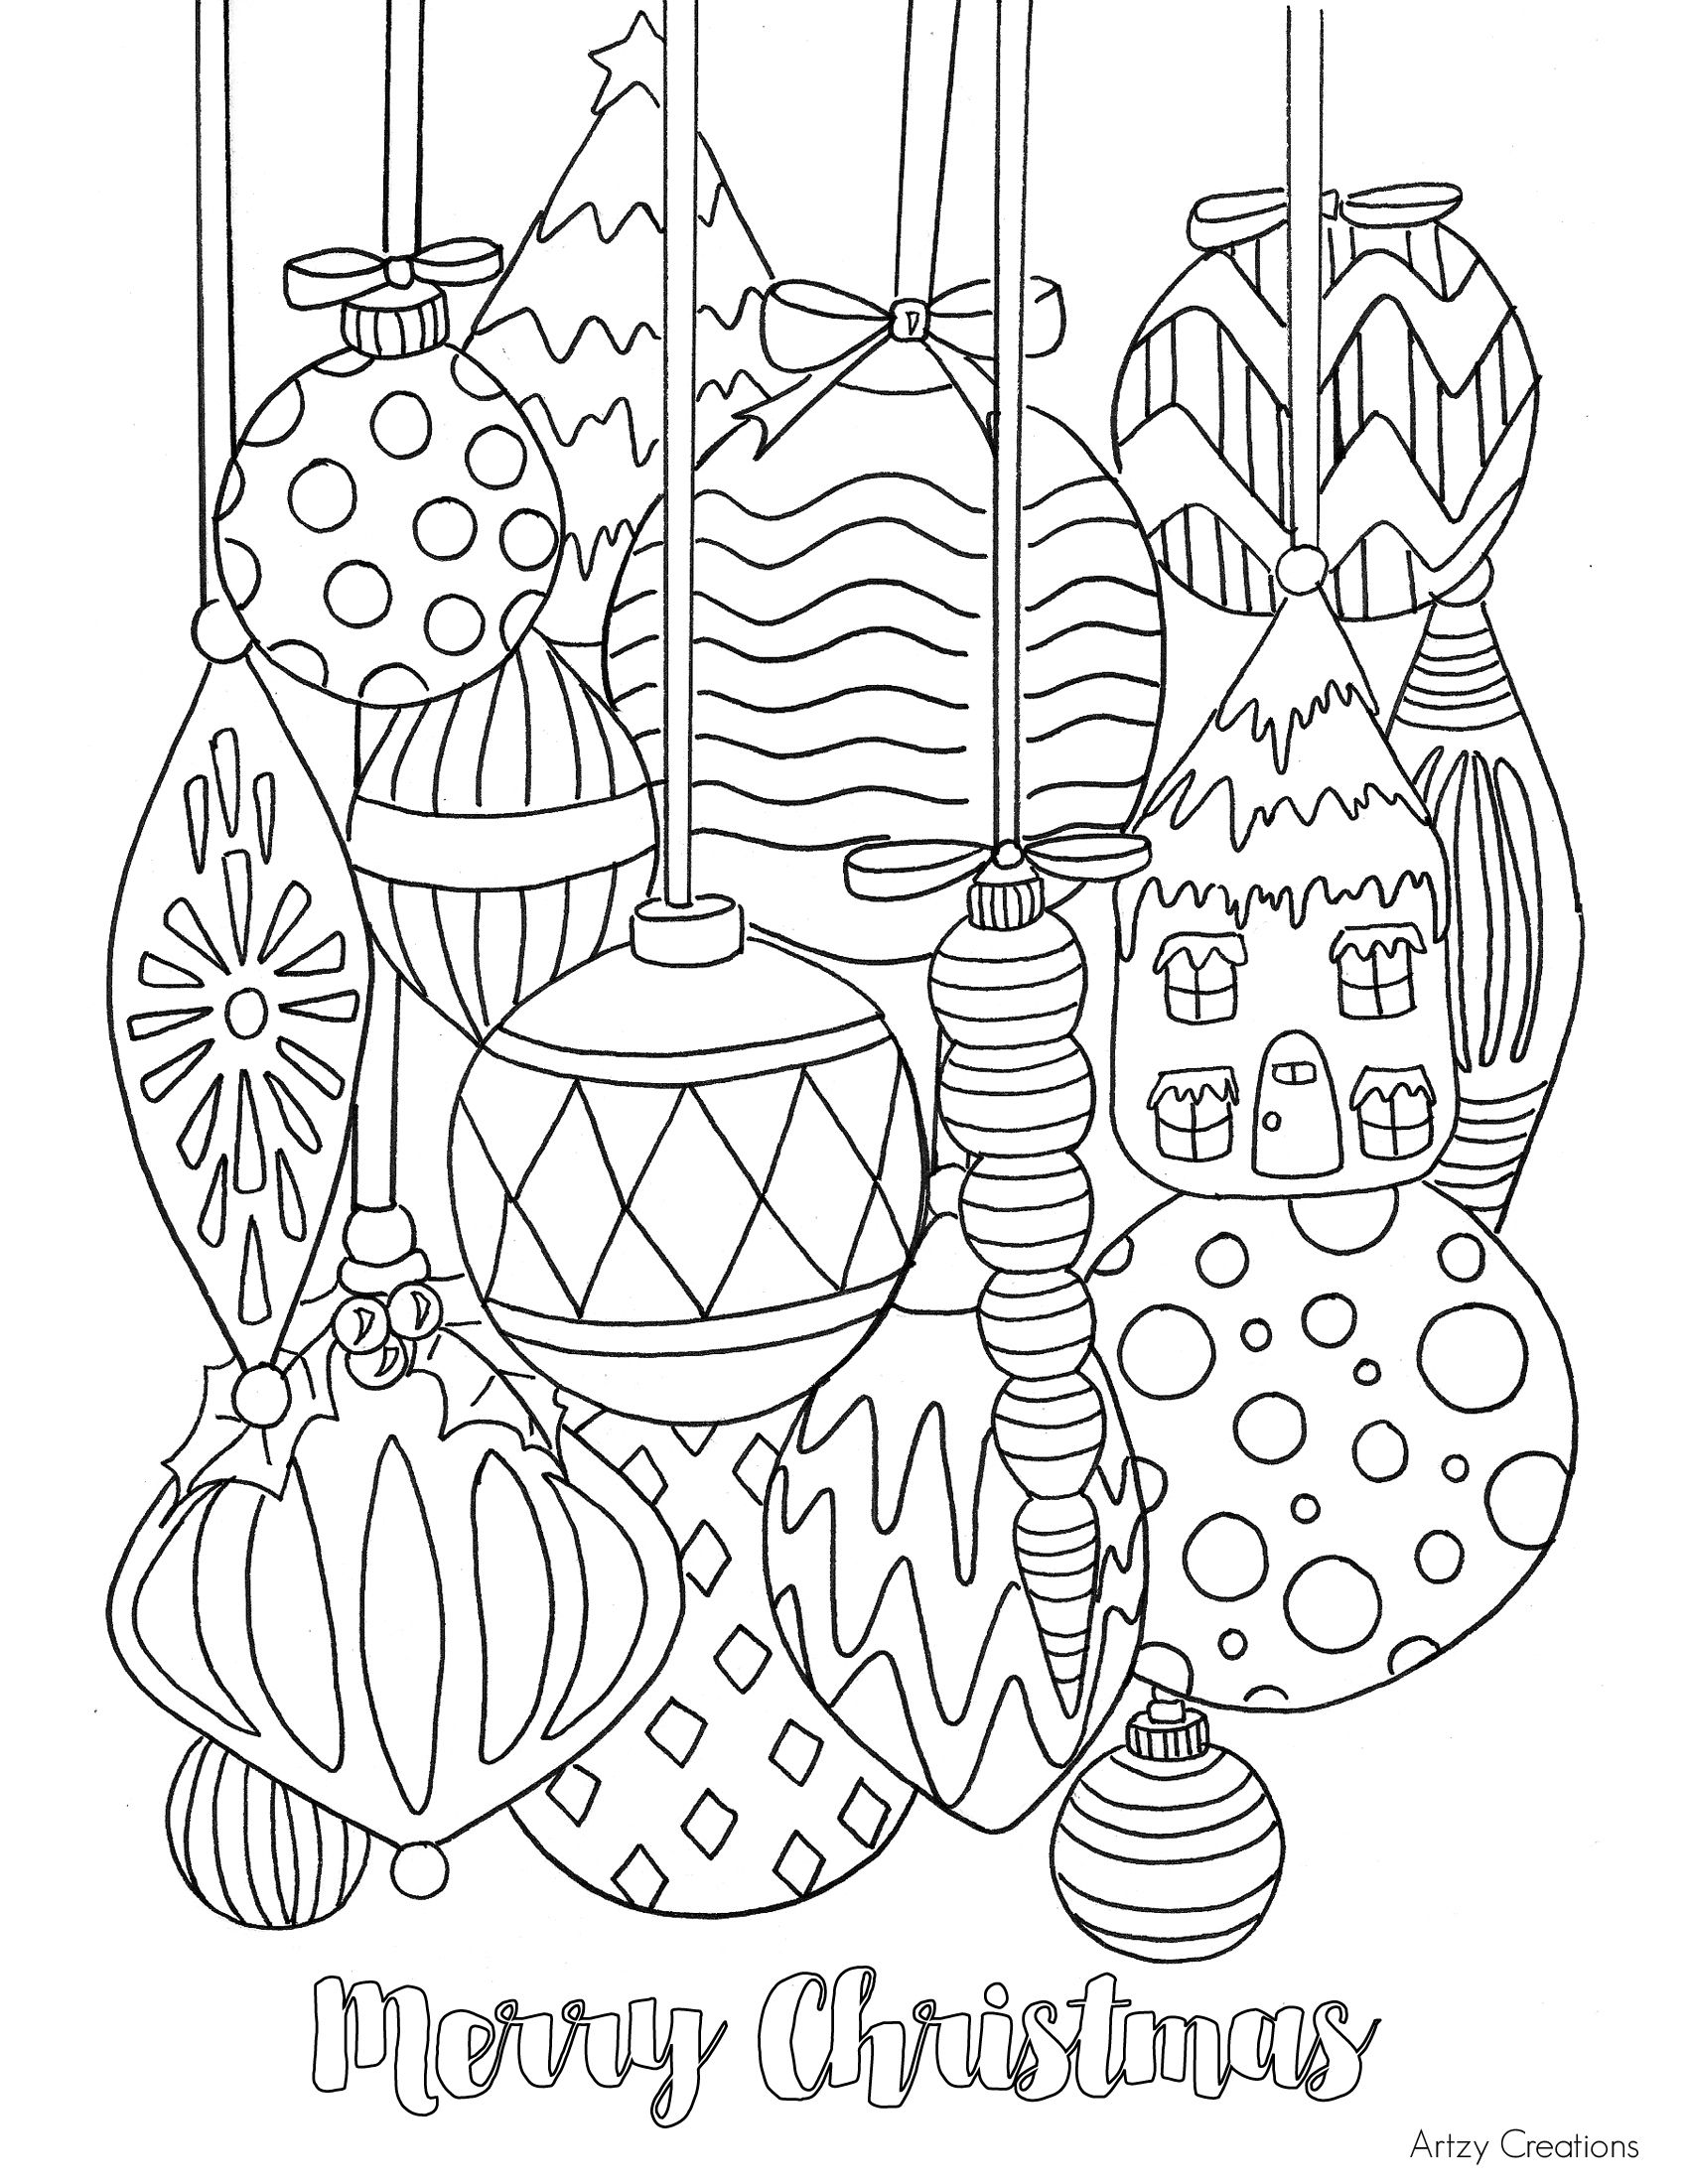 Free Christmas Ornament Coloring Page T This Grandma Is Fun